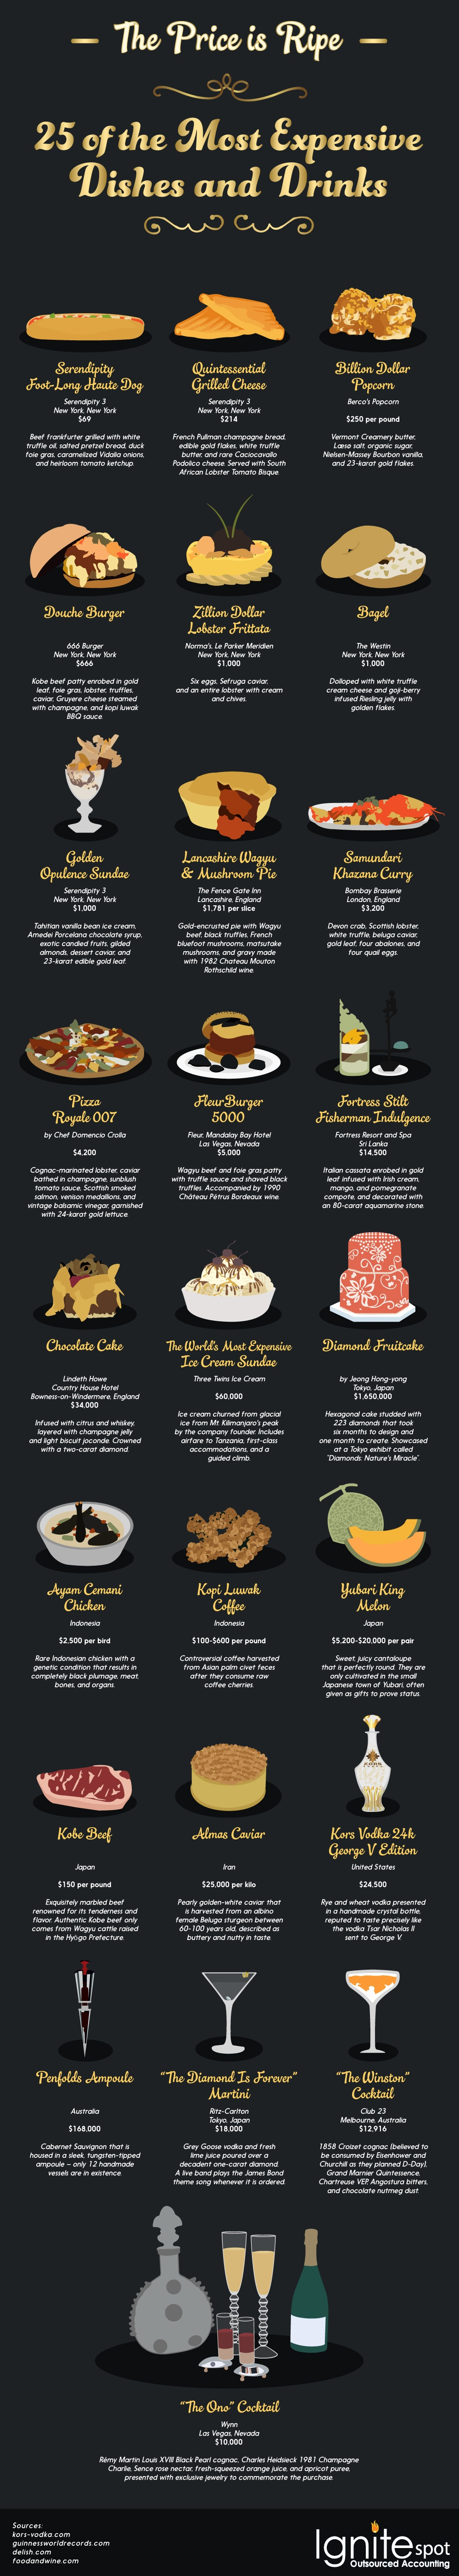 The Price is Ripe: 25 Most Expensive Dishes and Drinks